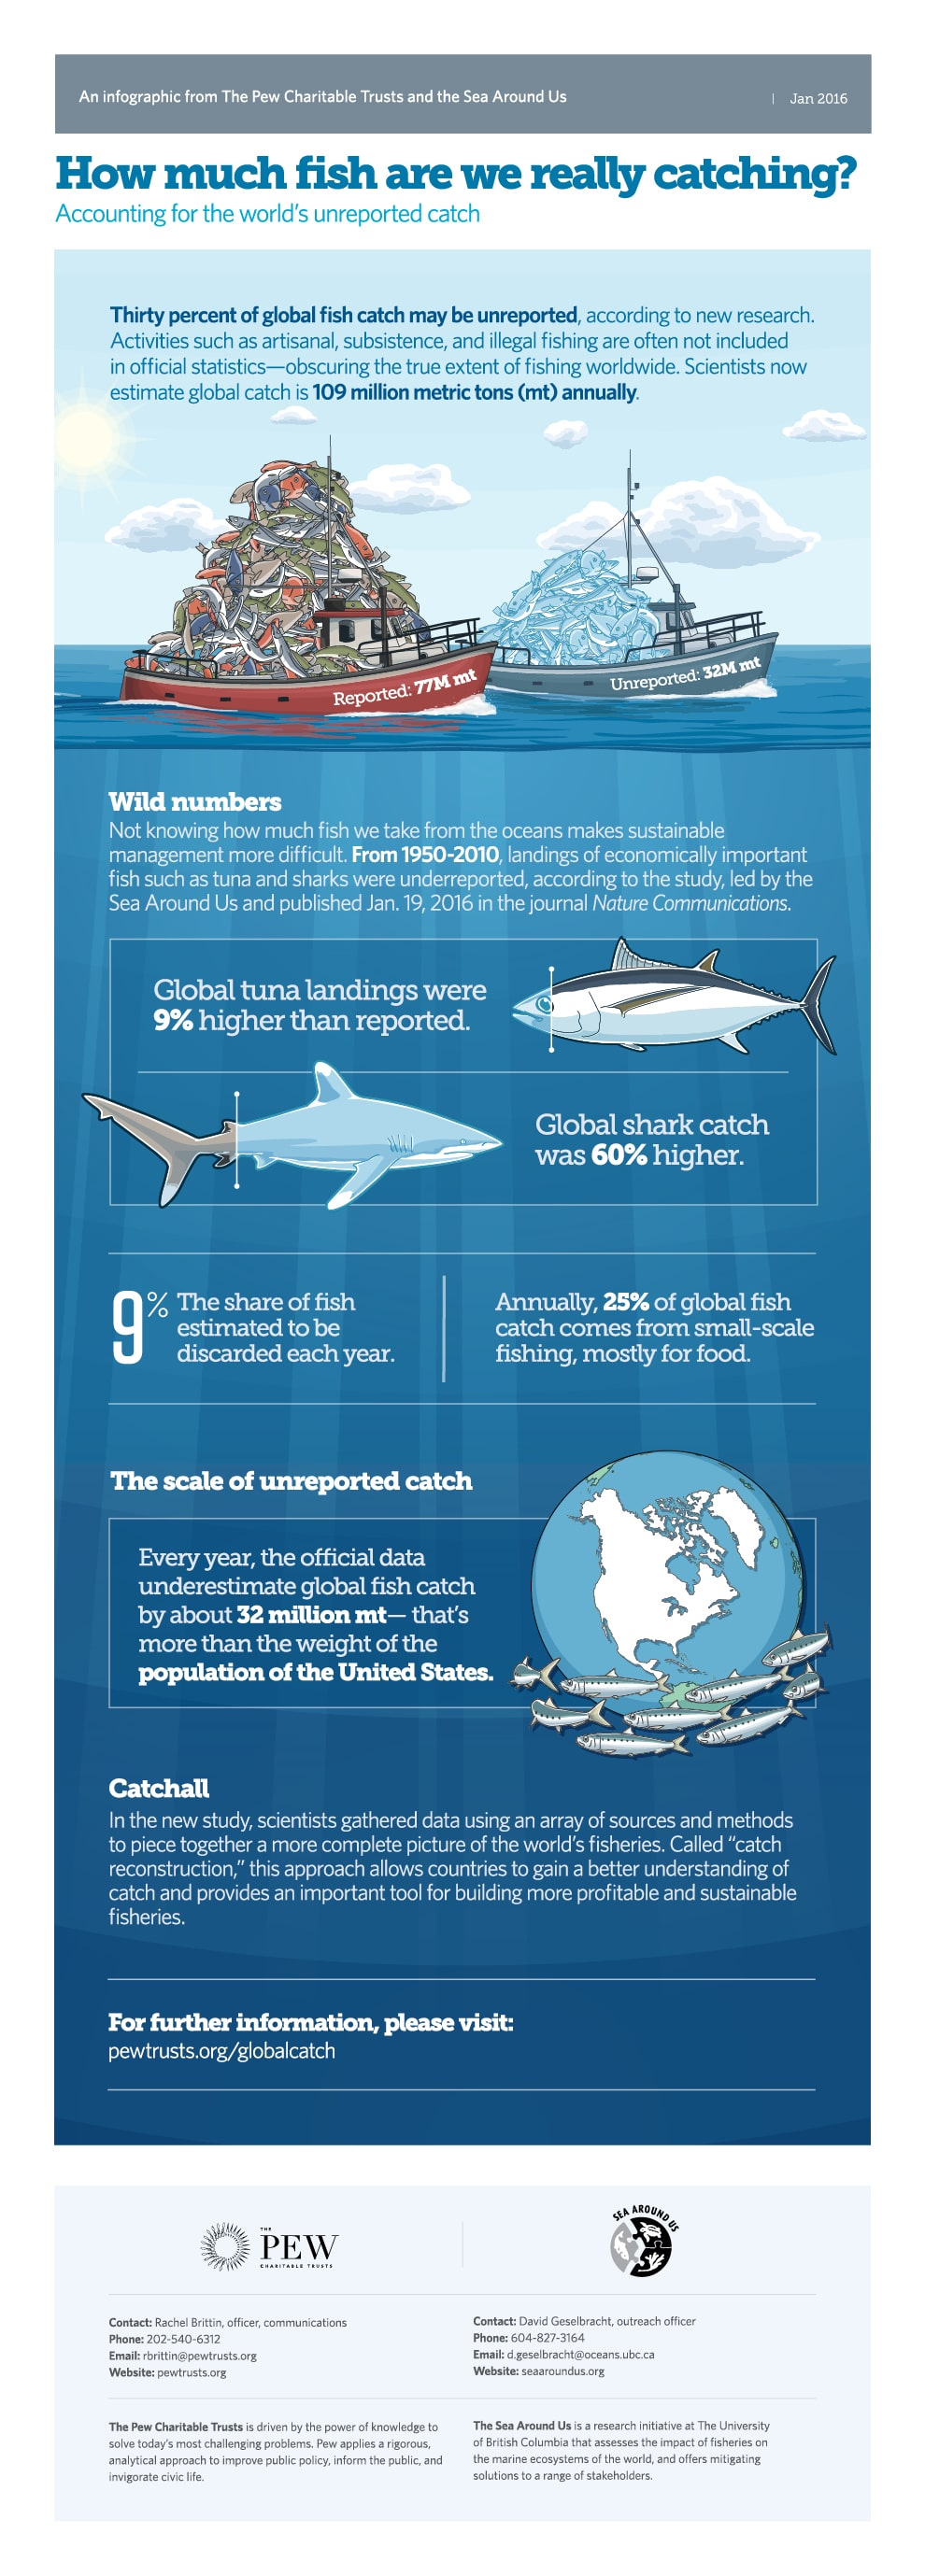 Accounting for the world's unreported fish catch - The Missing Fish